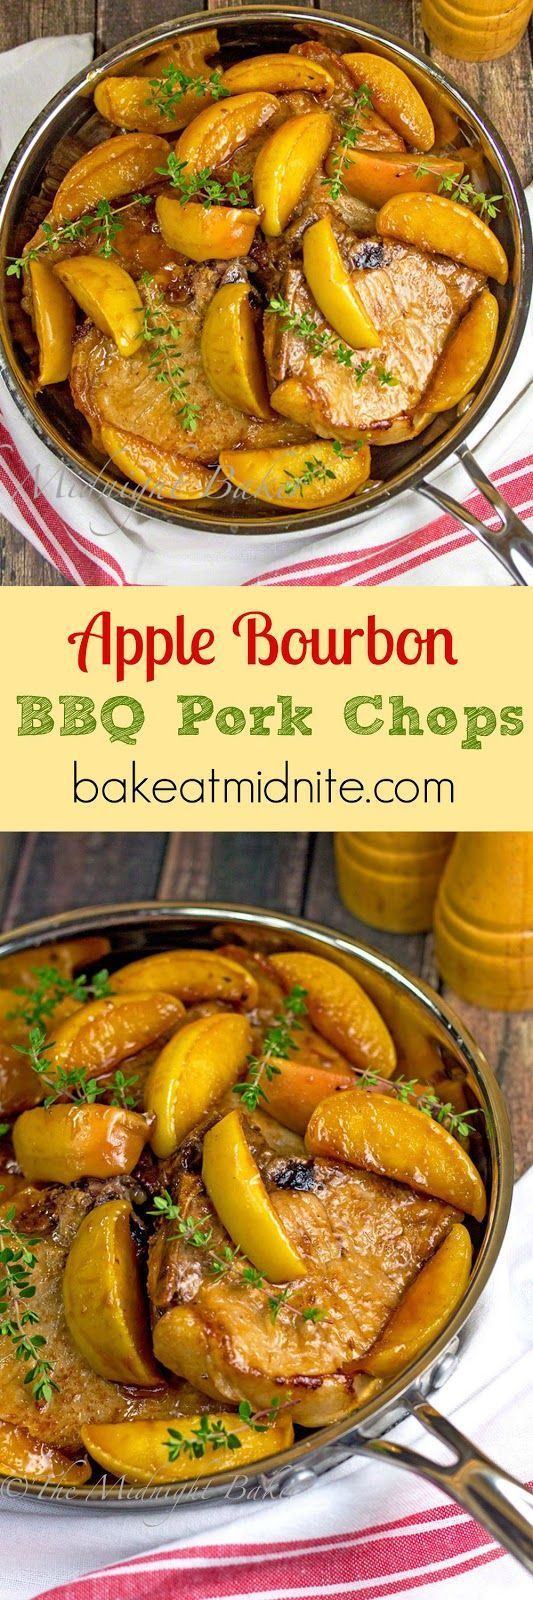 Apple Bourbon BBQ Pork Chops | bakeatmidnite.com